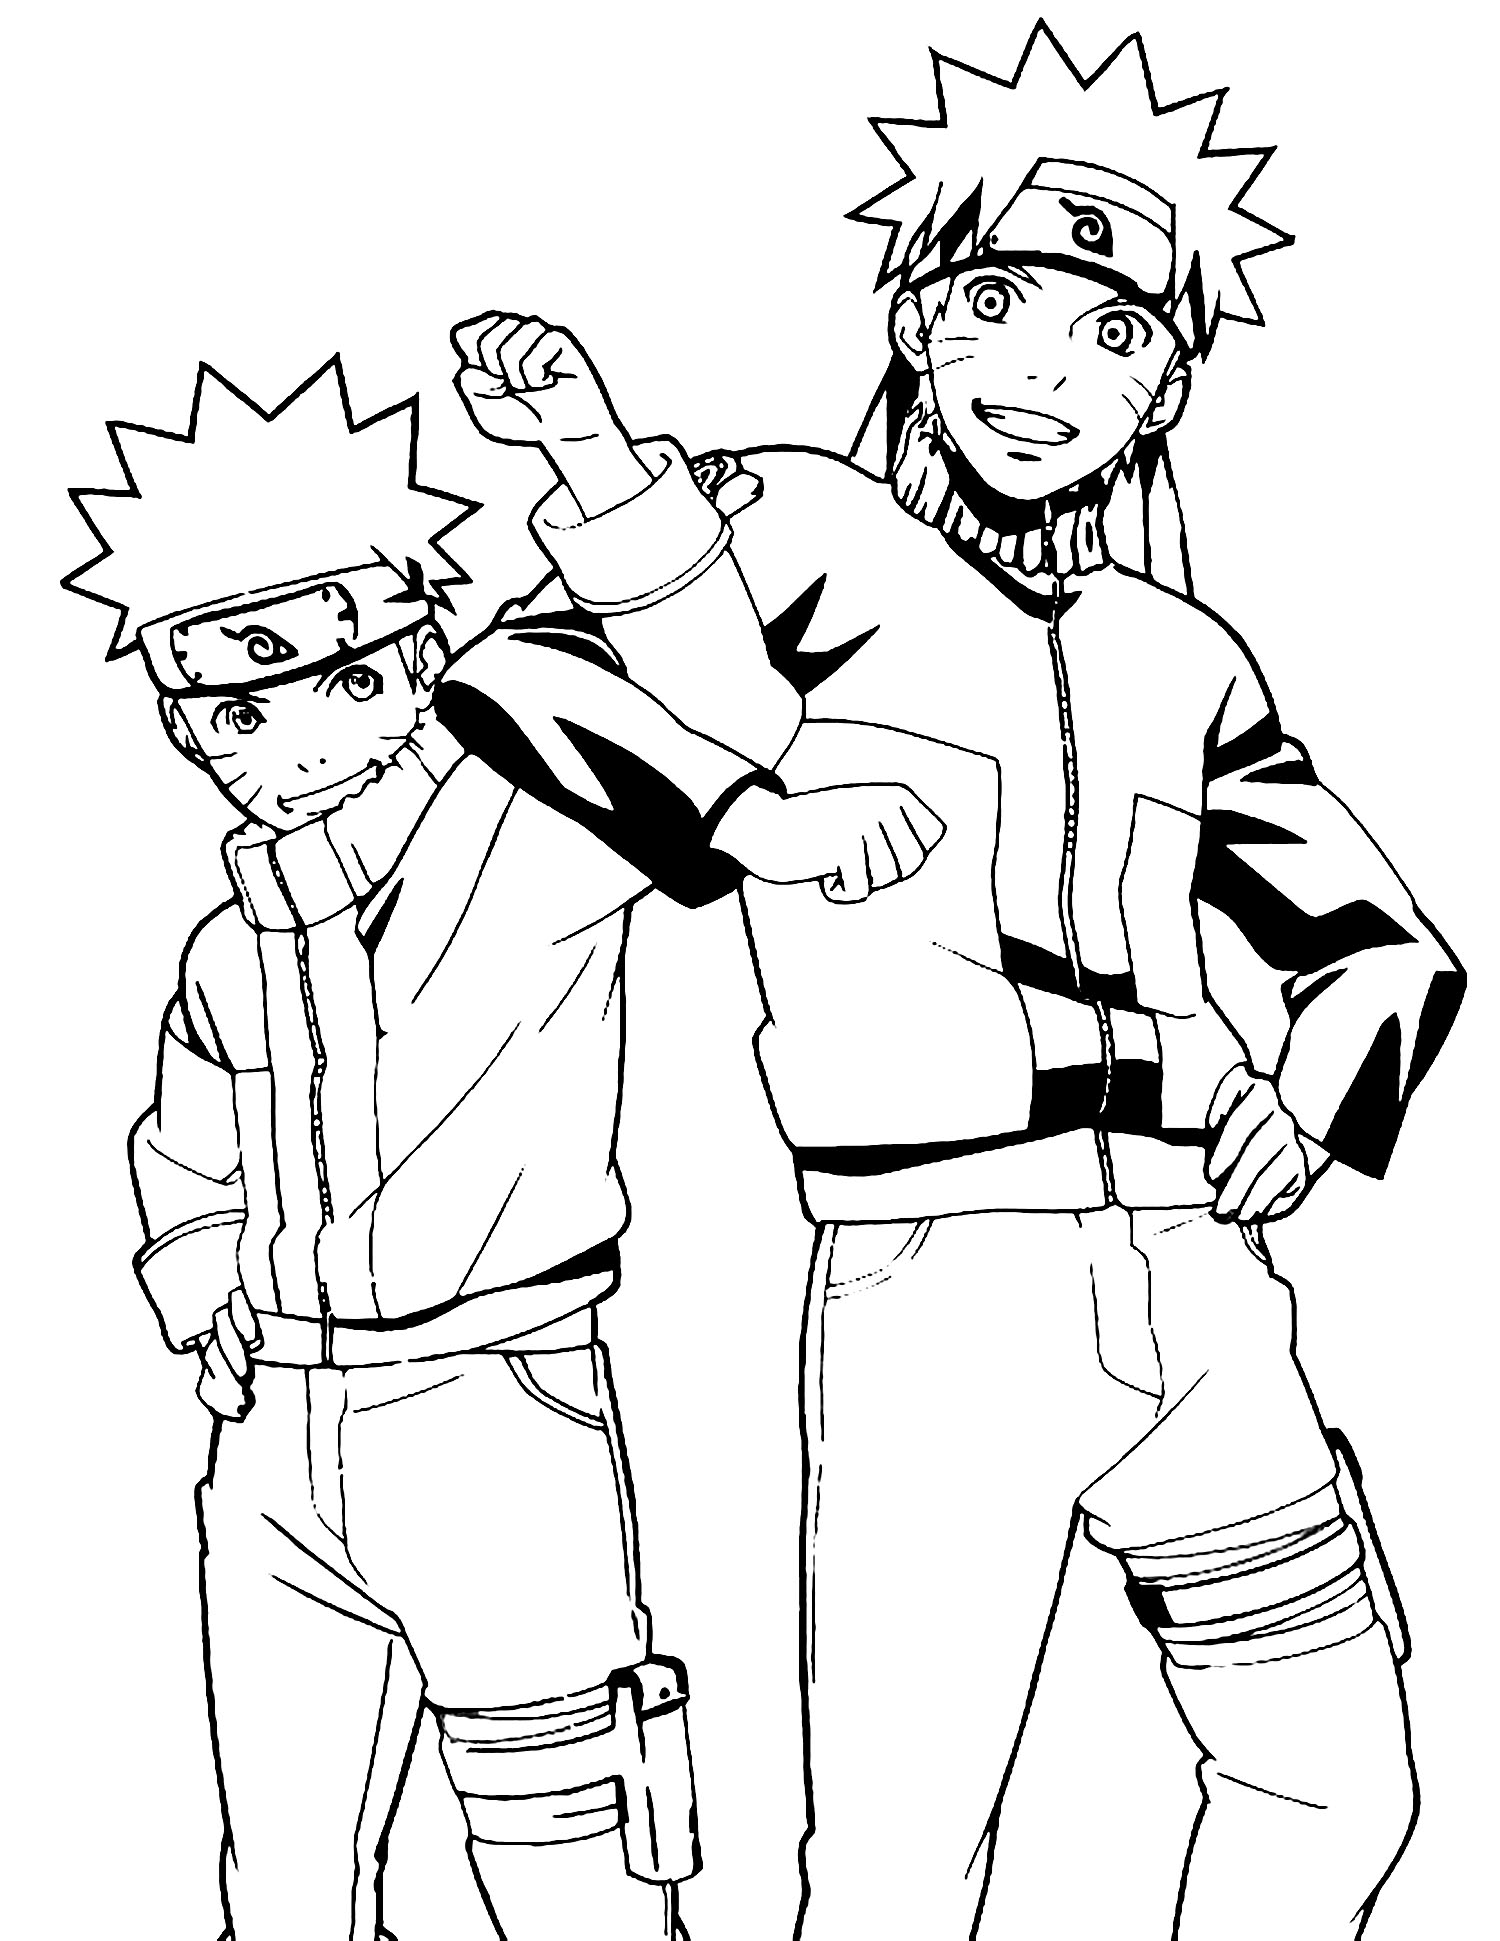 naruto coloring pages 25 picture free printable naruto coloring pages coloring naruto coloring pages